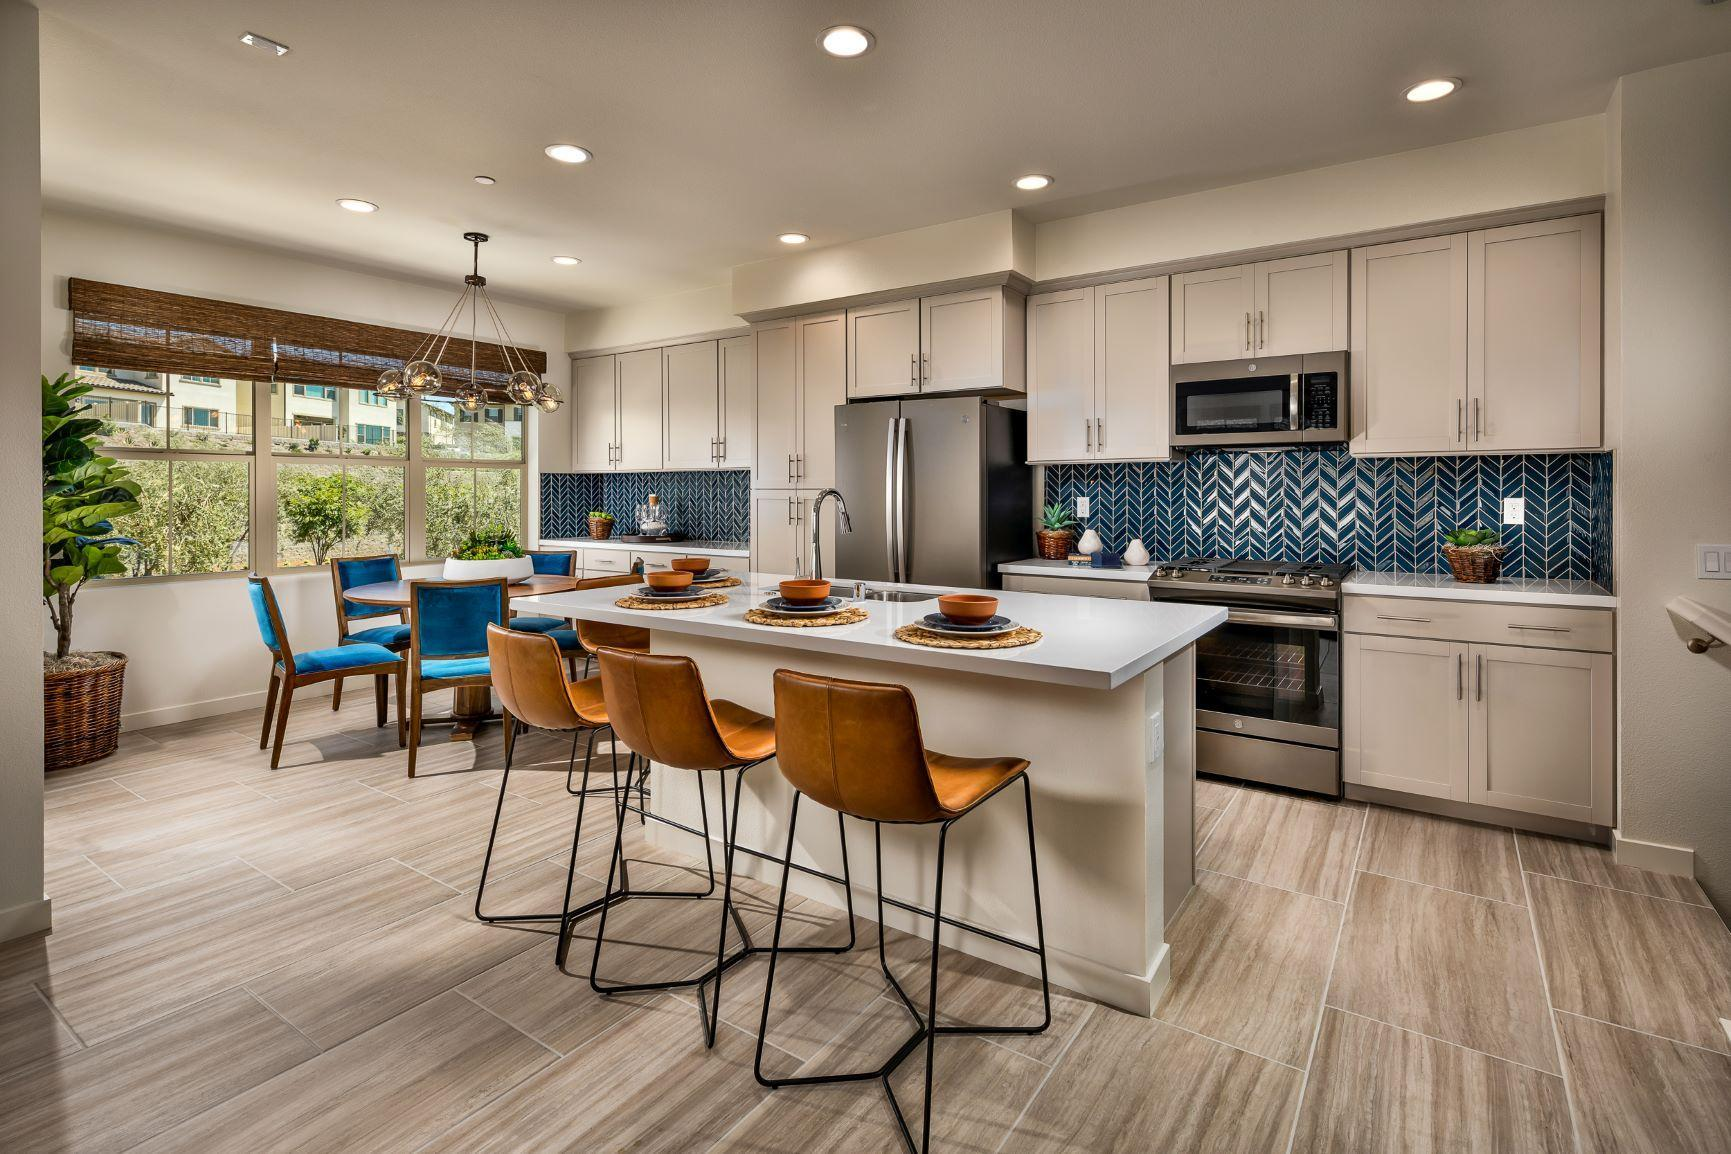 Kitchen featured in the Plan Two By Landsea Homes in Orange County, CA